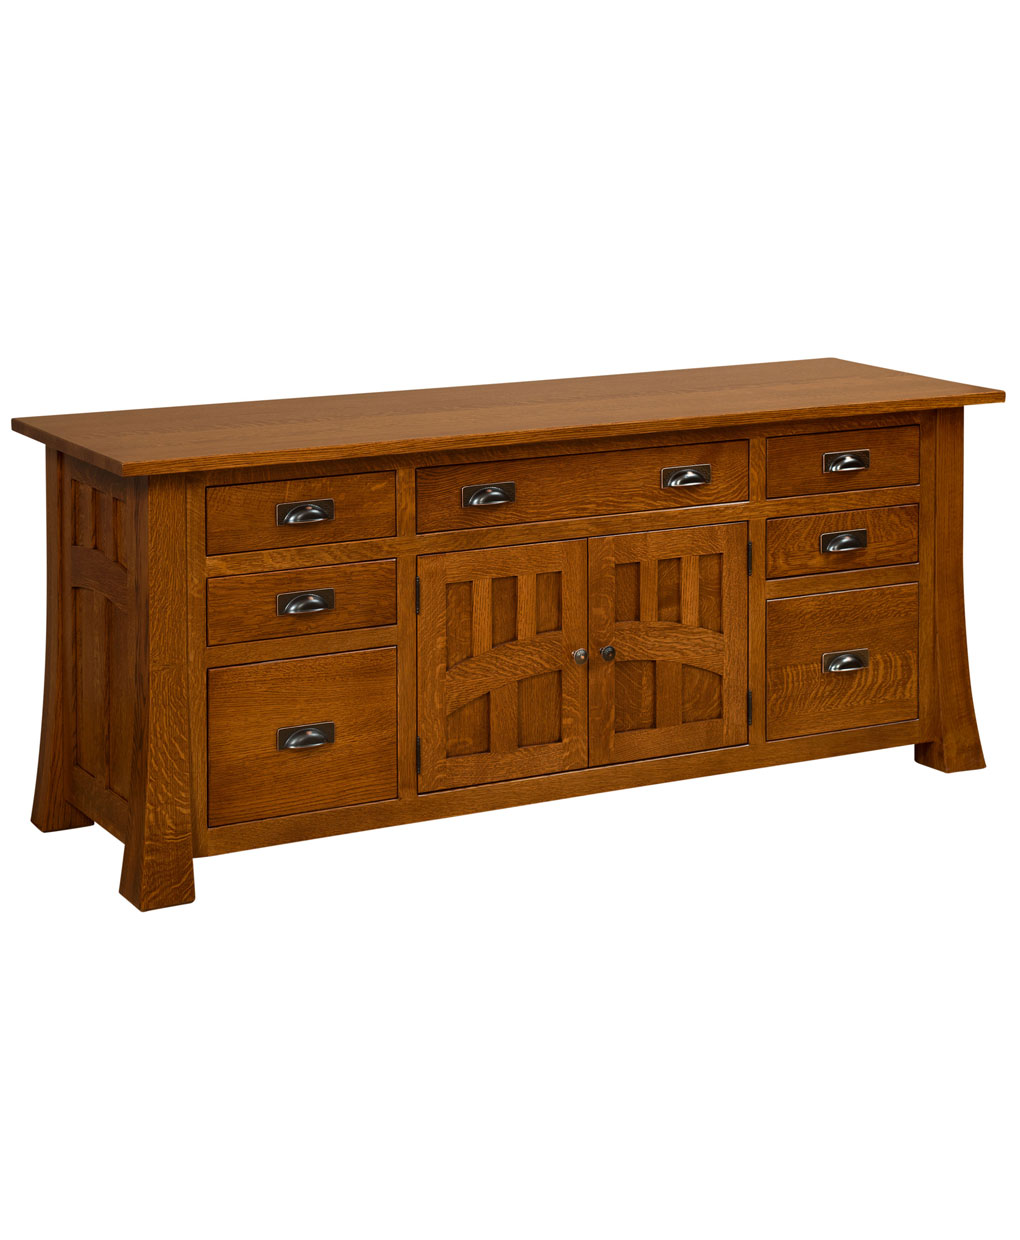 Bridgefort Mission Credenza - Amish Direct Furniture